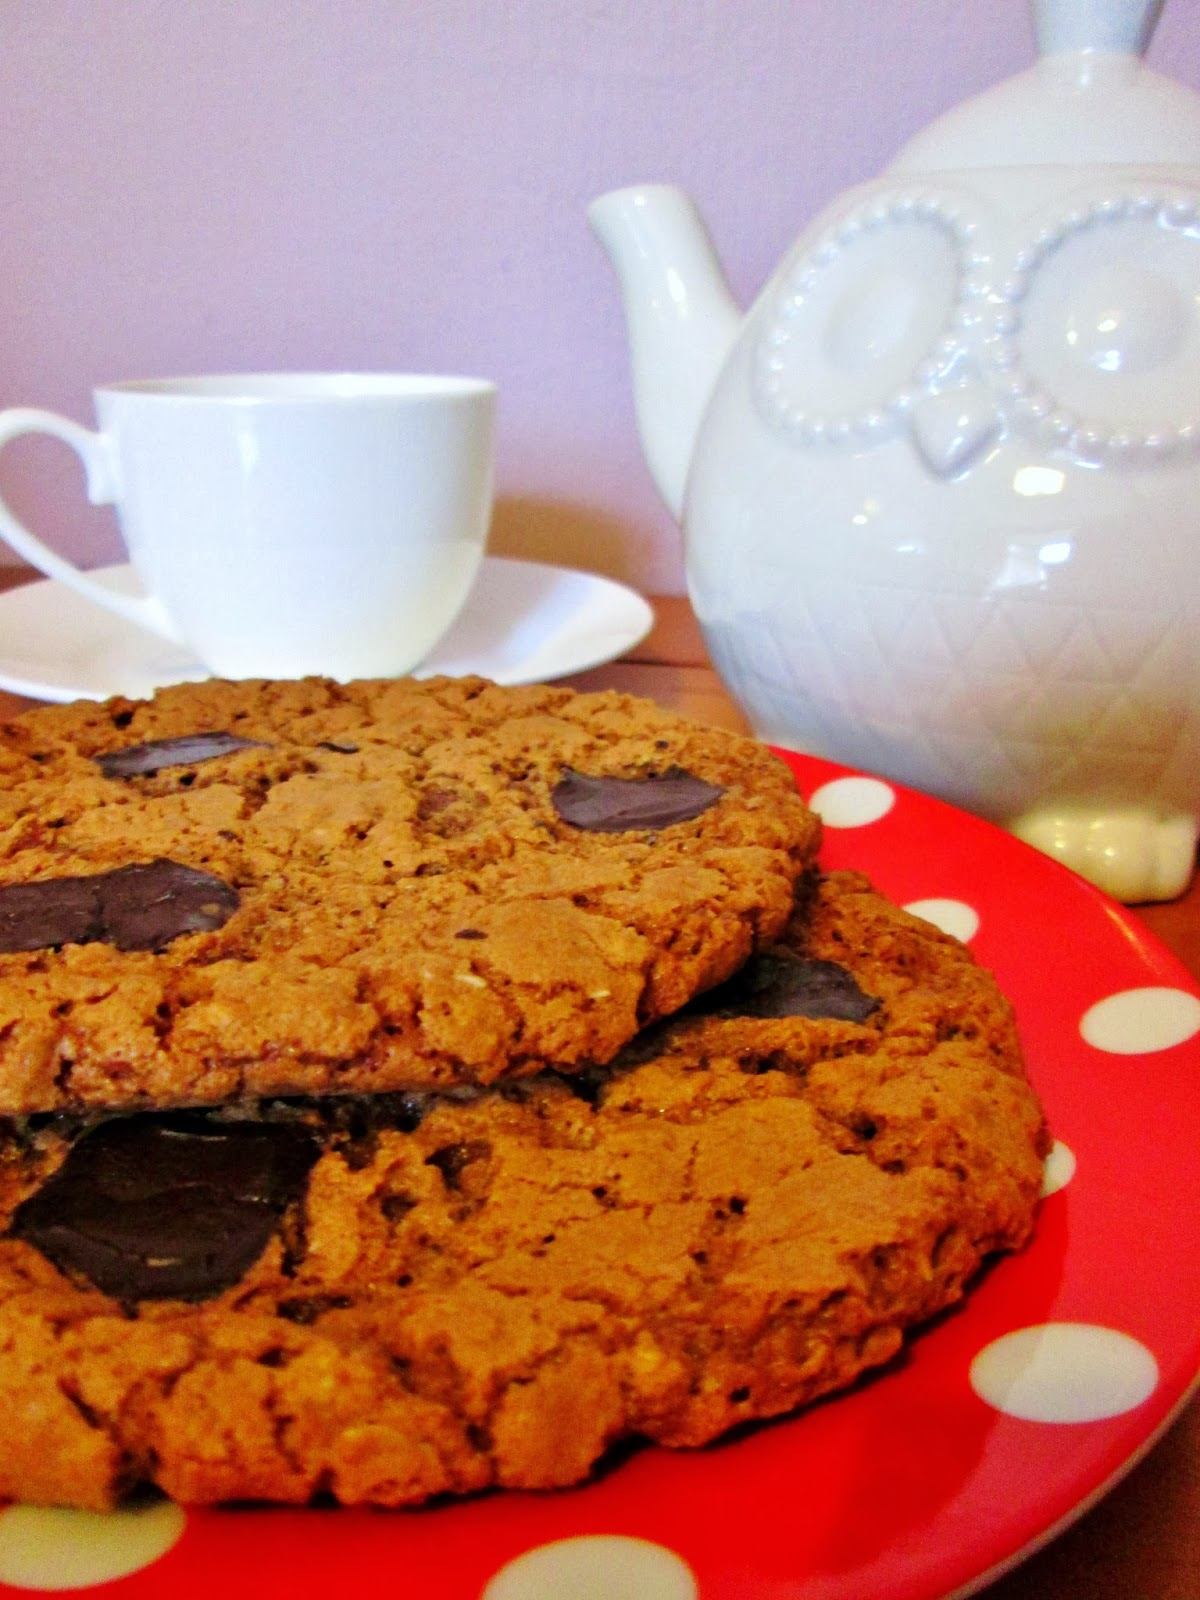 http://themessykitchenuk.blogspot.co.uk/2014/01/luxury-giant-chocolate-oat-cookies.html